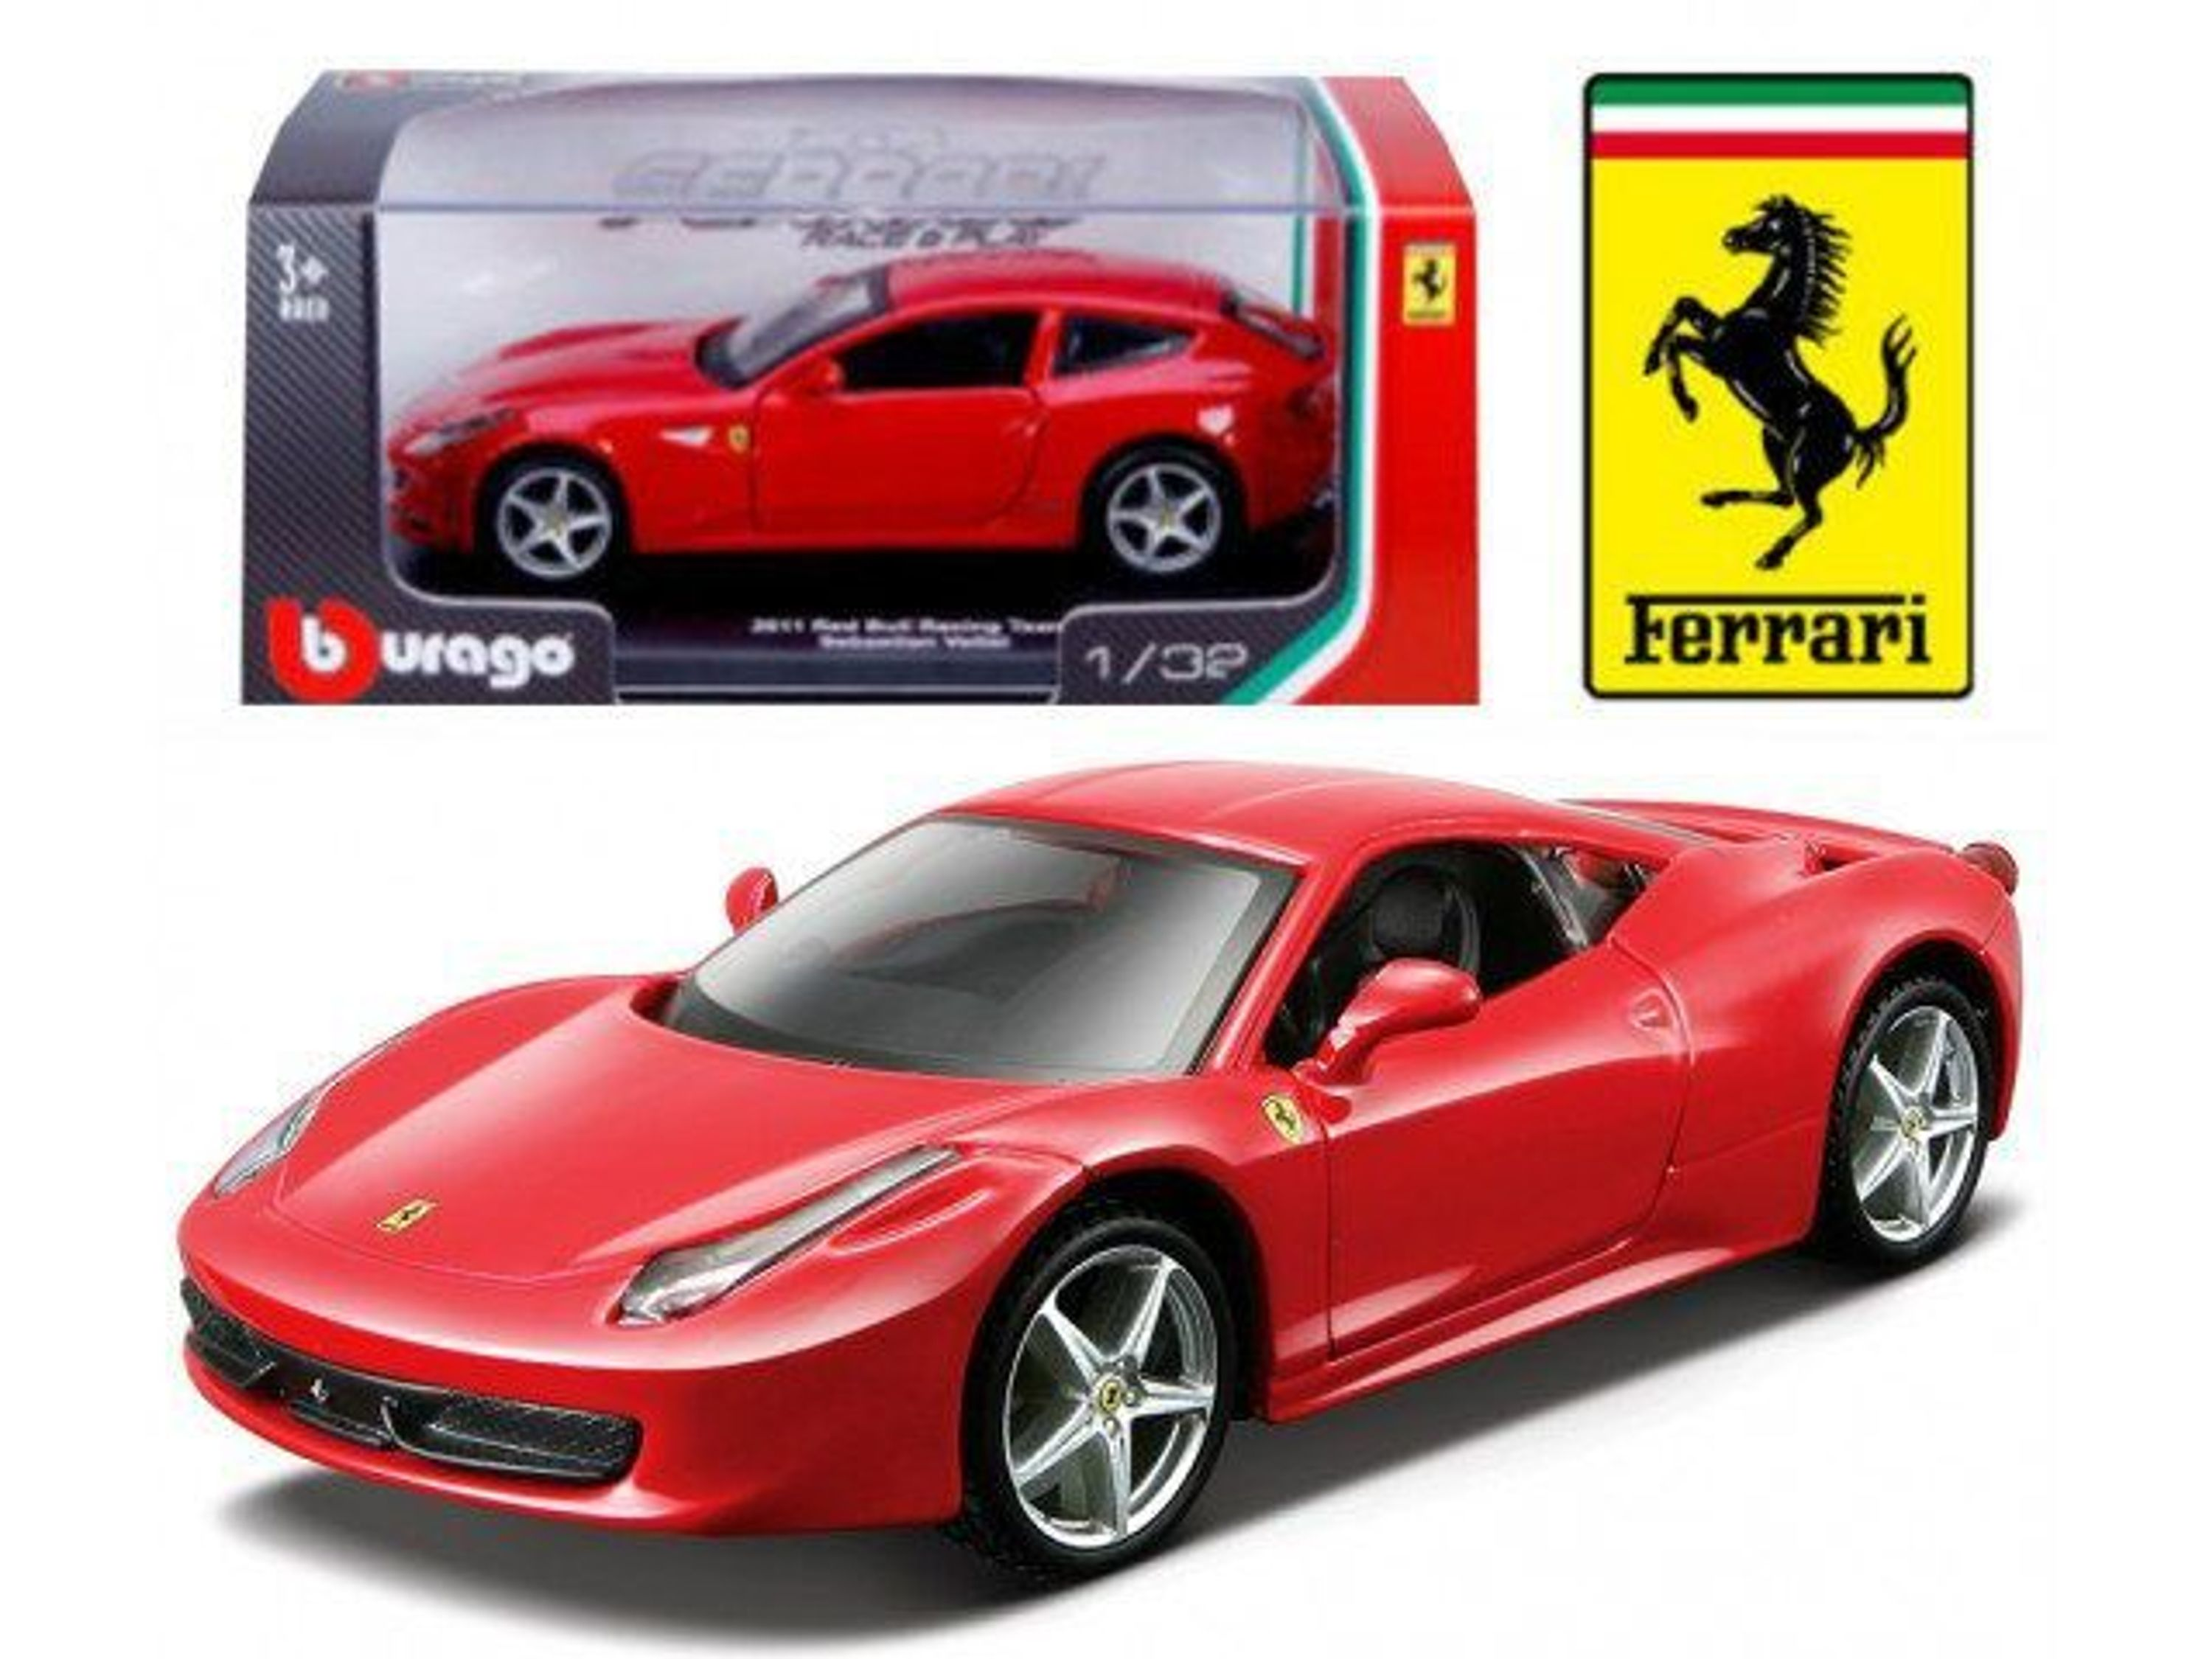 ferrari 458 italia vitrine bburago auto modell 1 32 kaufen bei. Black Bedroom Furniture Sets. Home Design Ideas